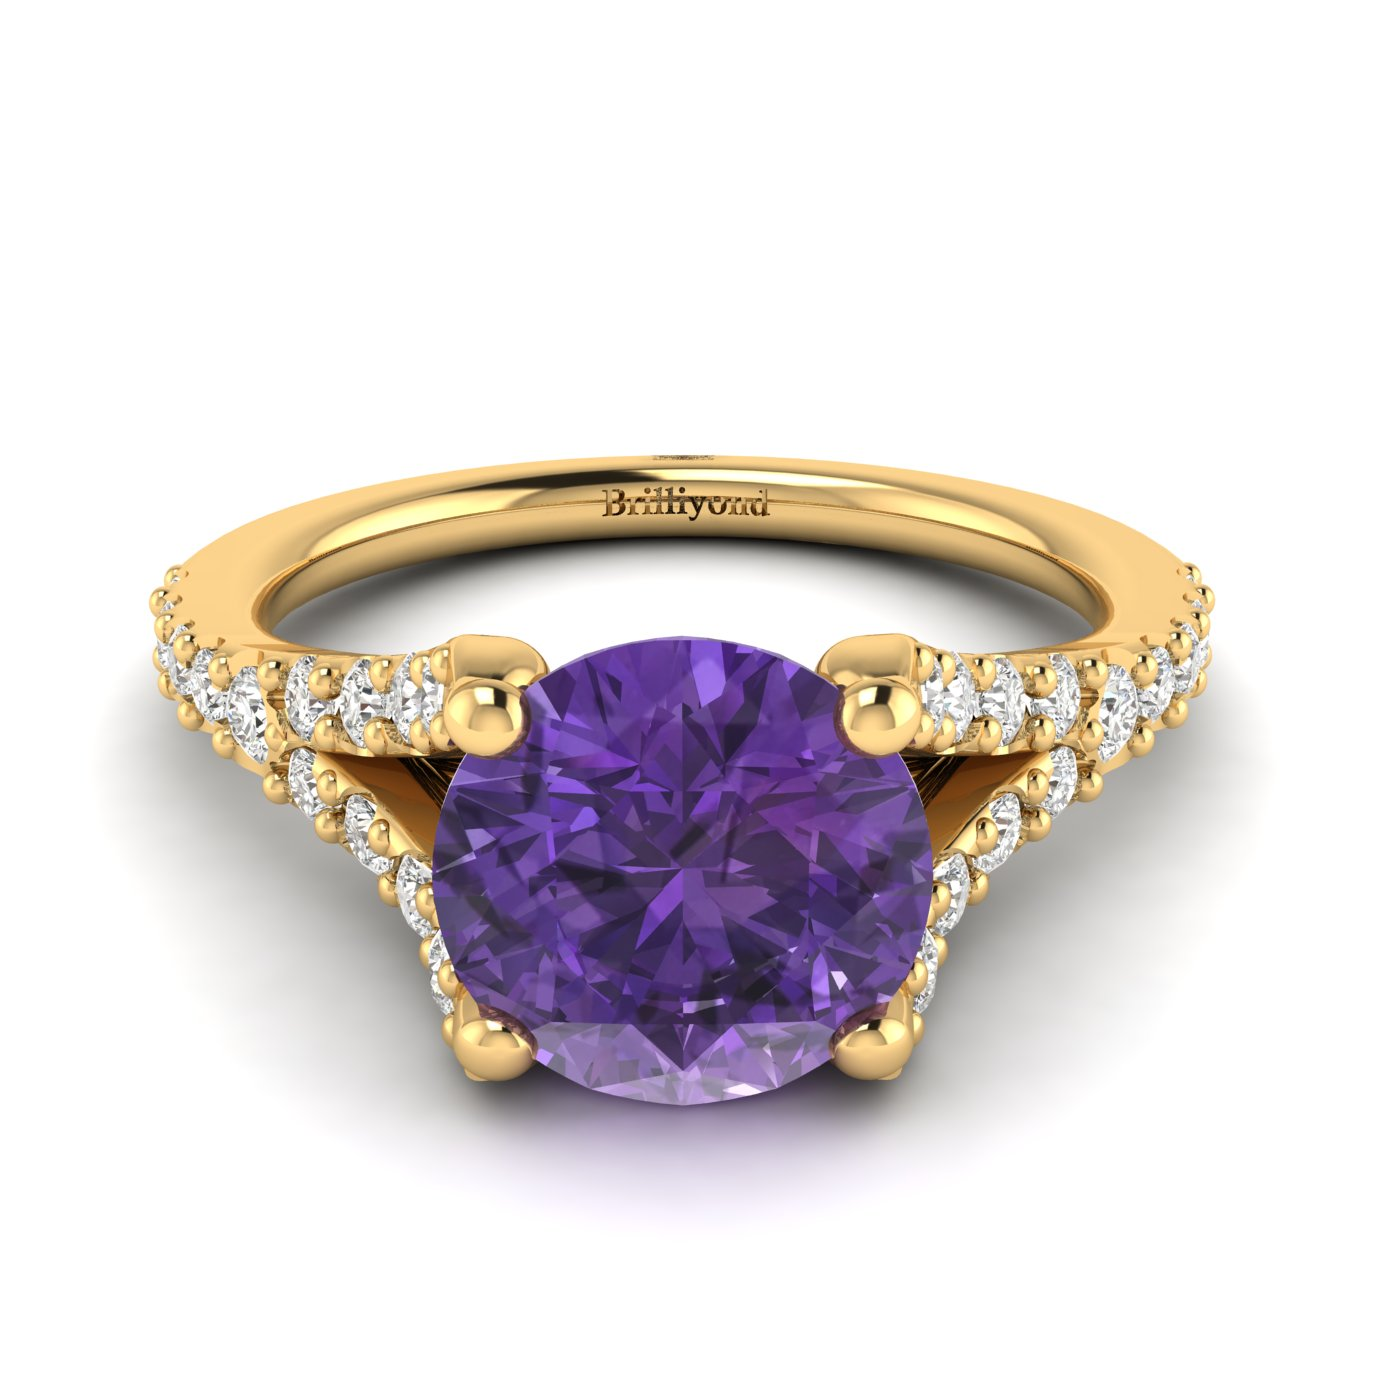 A natural round cut amethyst in four prongs handset in a solid 18k yellow gold band.